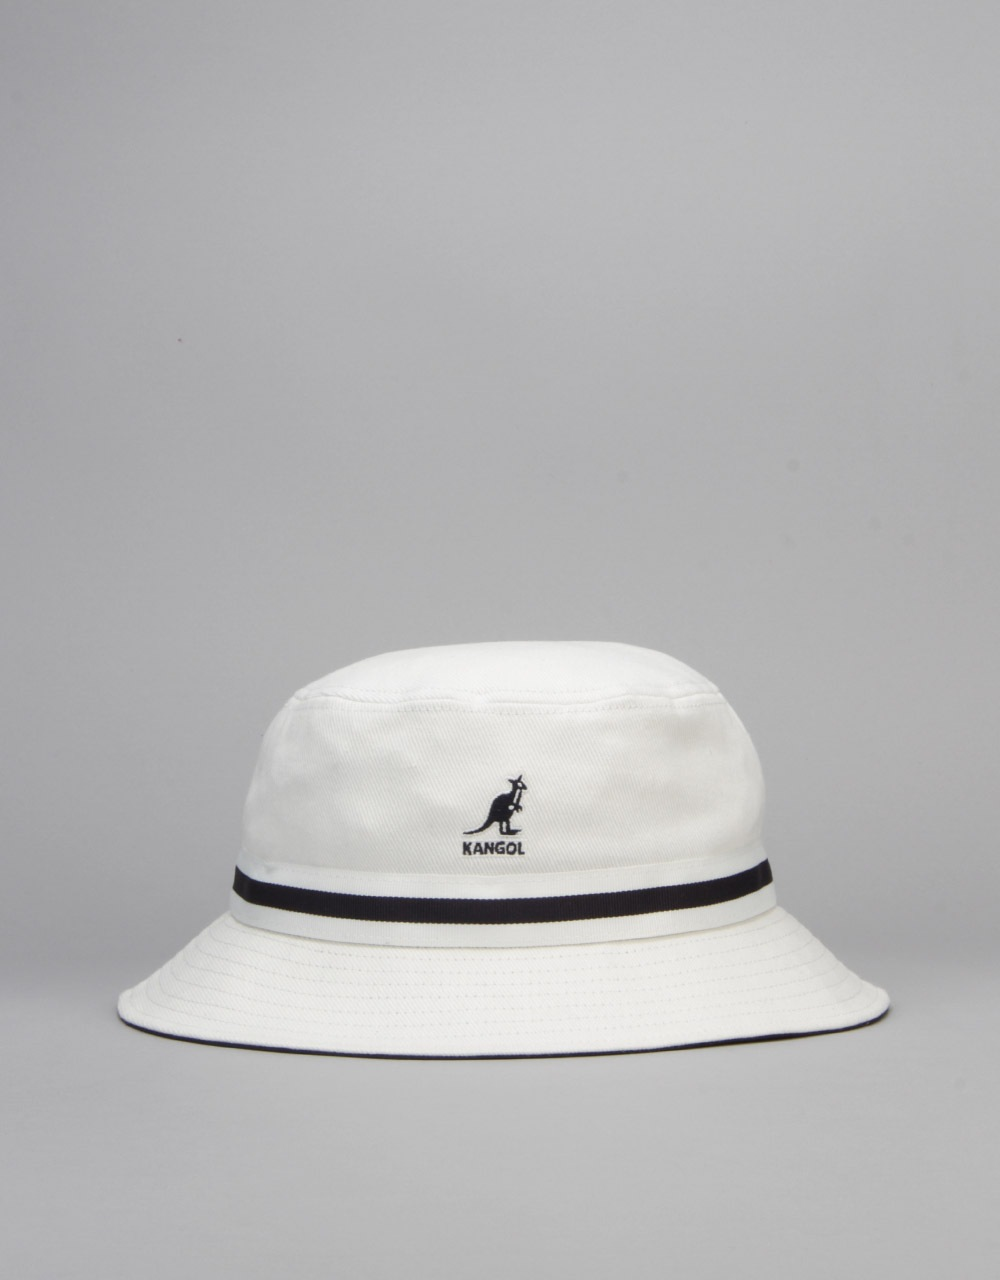 acf0d7f66ee Kangol Stripe Lahinch Bucket Hat - White